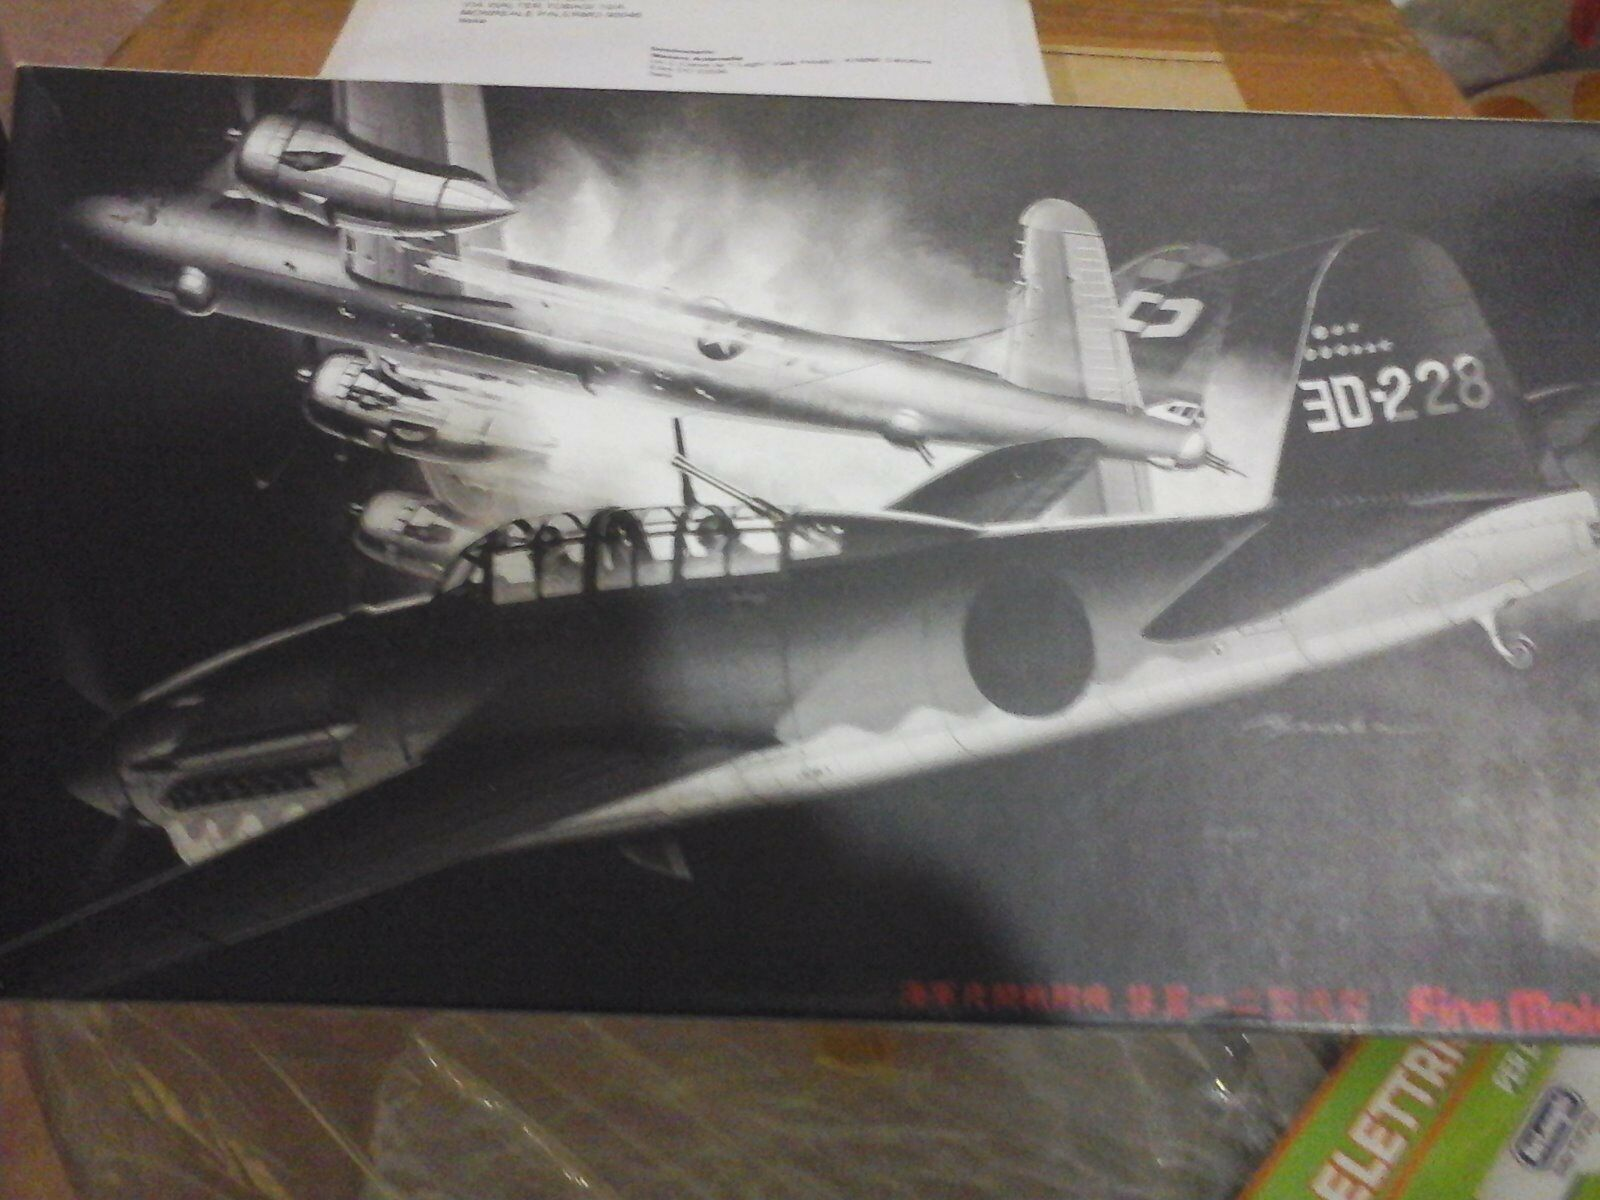 JULY IMPERIAL JAPANESE NAVY NIGHT FIGHTER 1 48 SCALE FINE MOLDS MODEL+METAL PART